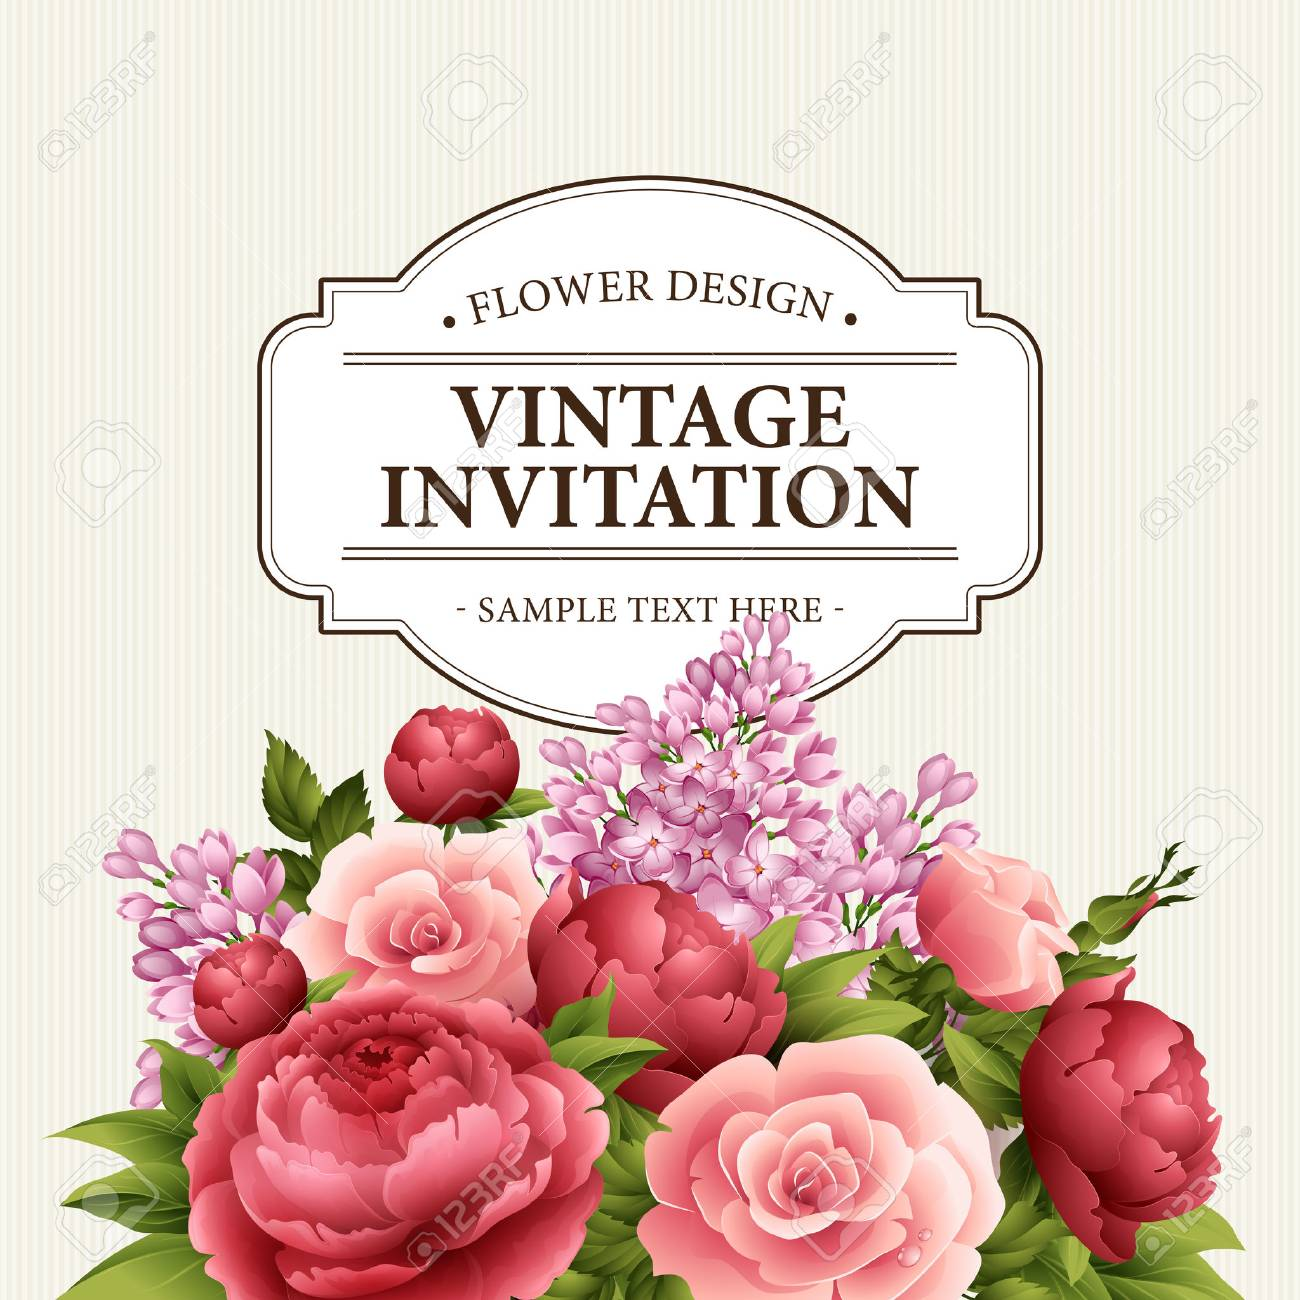 Floral frame with flowers. Floral bouquet with peony, rose and lilac. Vintage Greeting Card with flowers. Watercolor flourish border. Floral background. Vector illustration EPS10 - 53927096